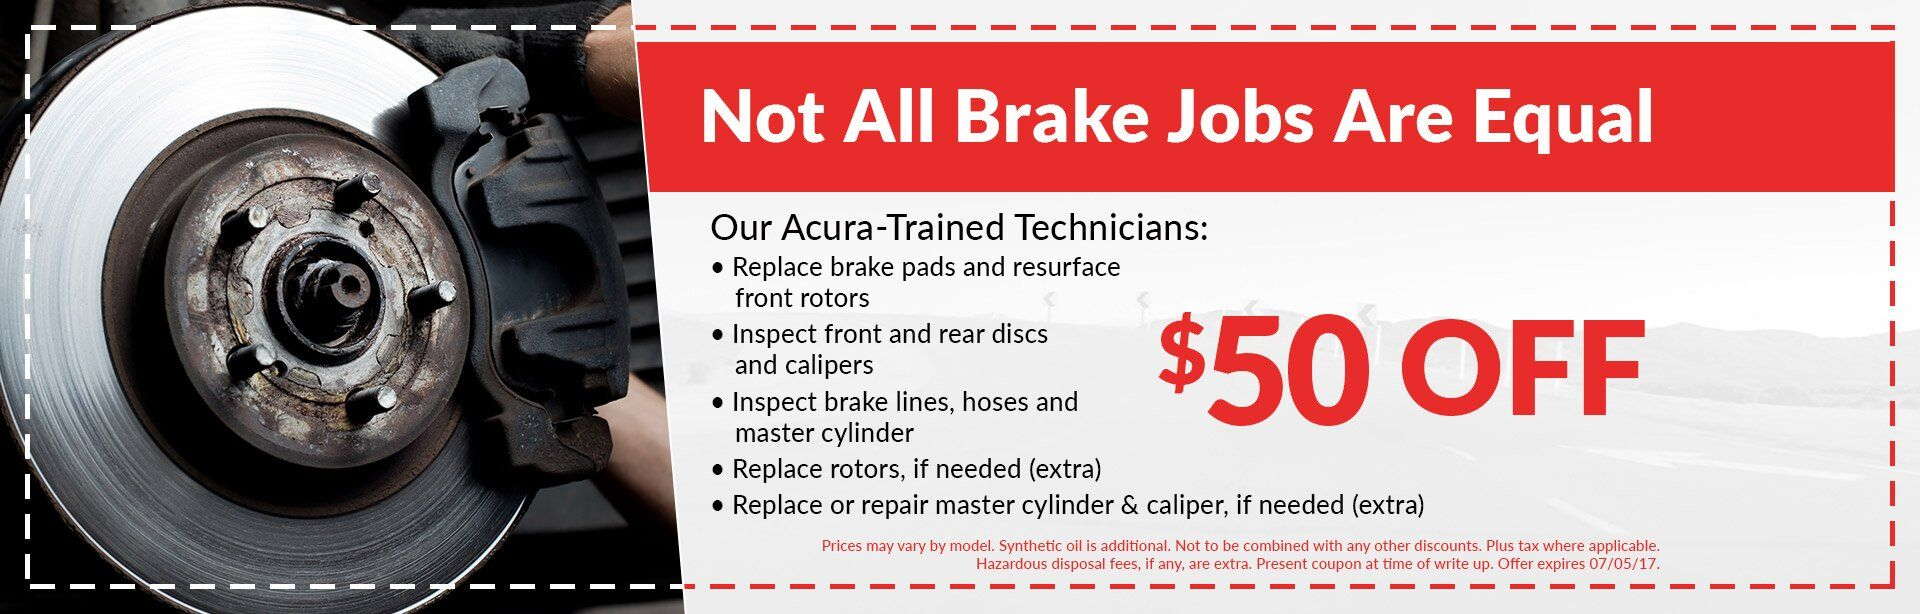 Not All Brake Jobs Are Equal